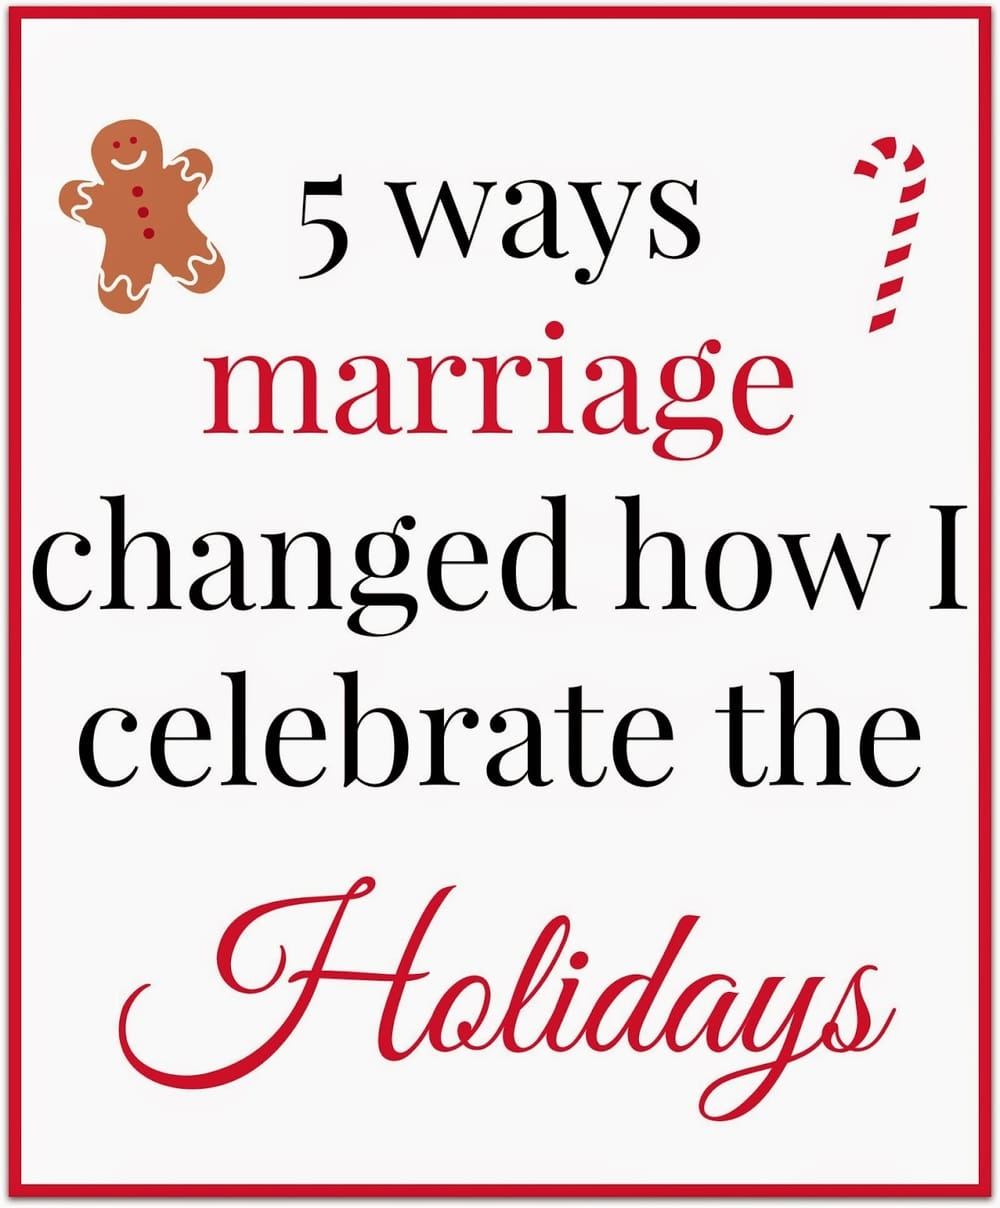 How marriage changed the way that I celebrate the holidays